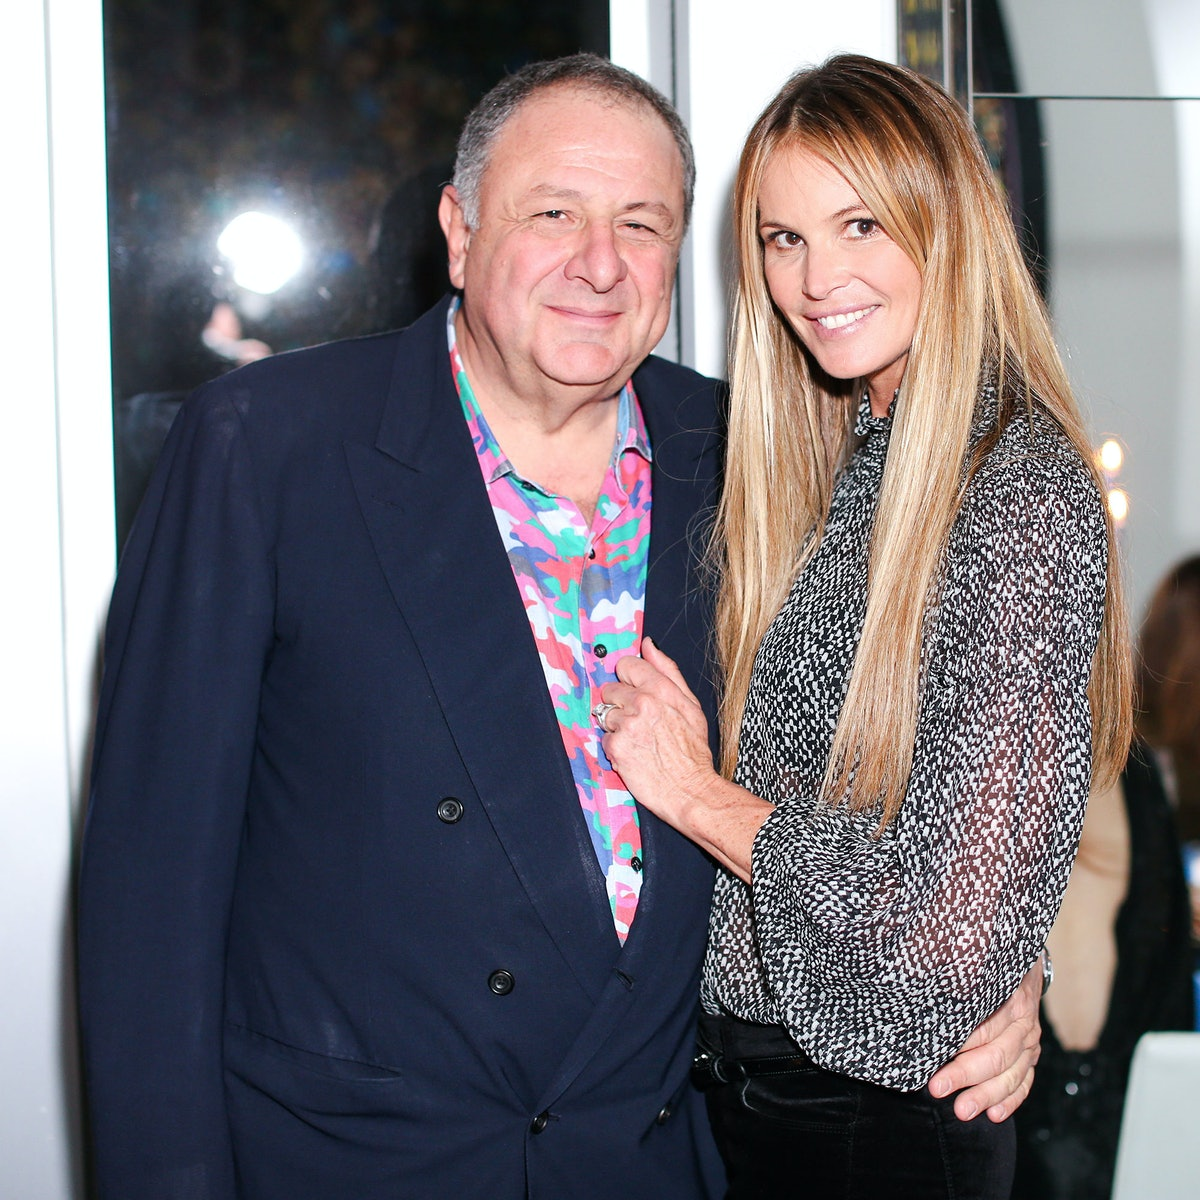 Jean Pigozzi and Elle Macpherson attend Tommy and Dee Hilfiger's Art Basel dinner party